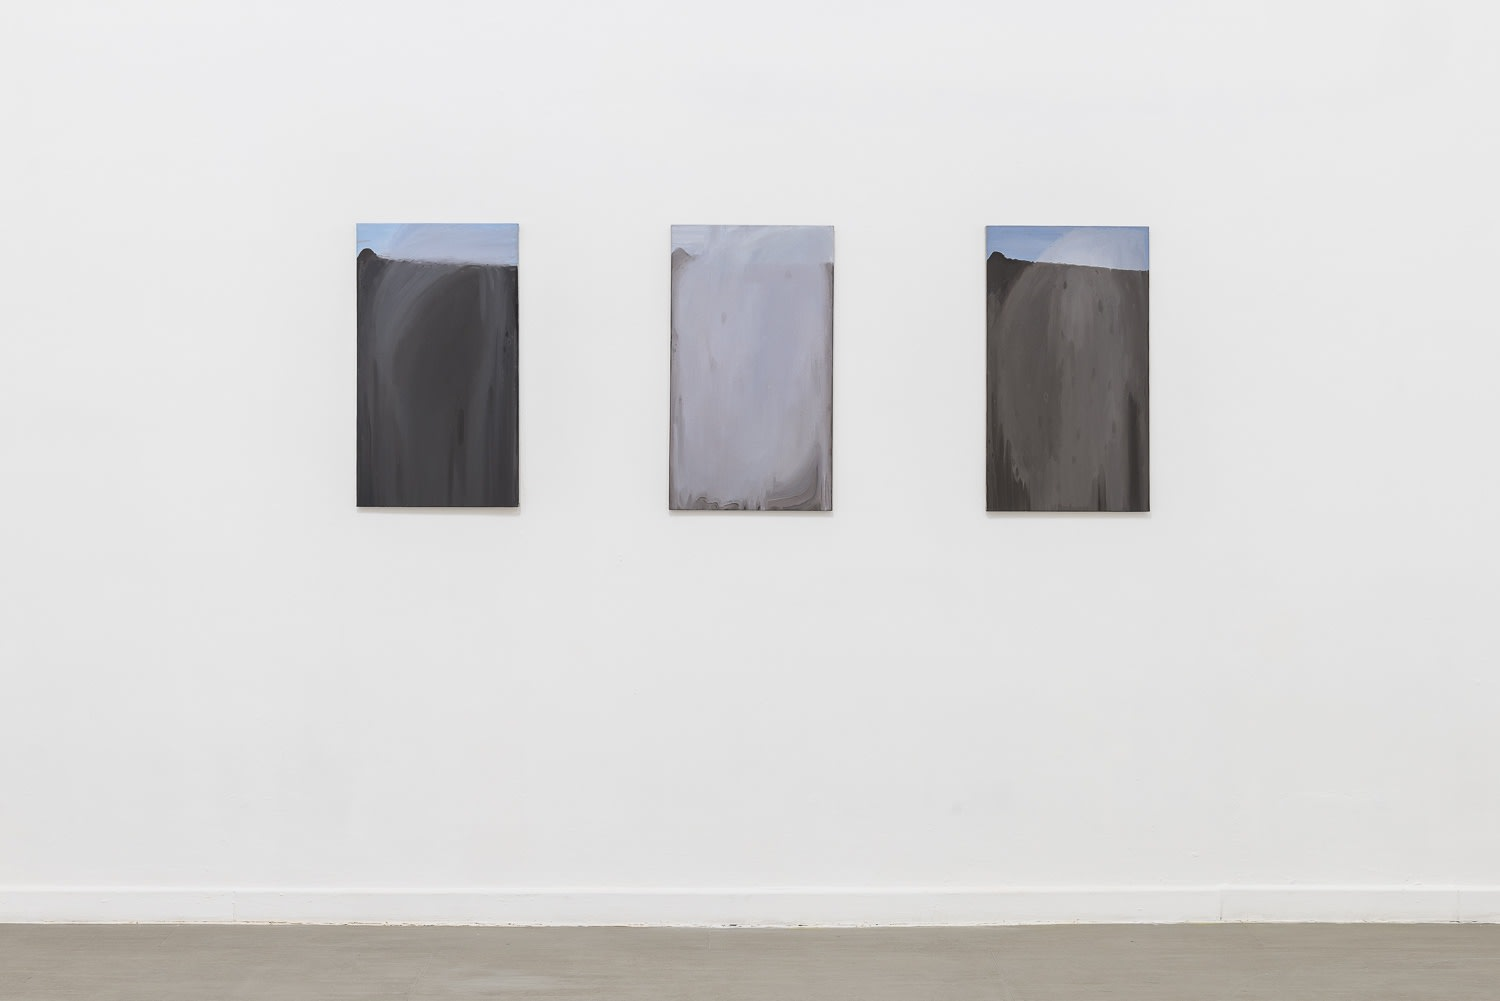 Verticale terra, Michele Tocca, installation view of the third room ph. Sebastiano Luciano